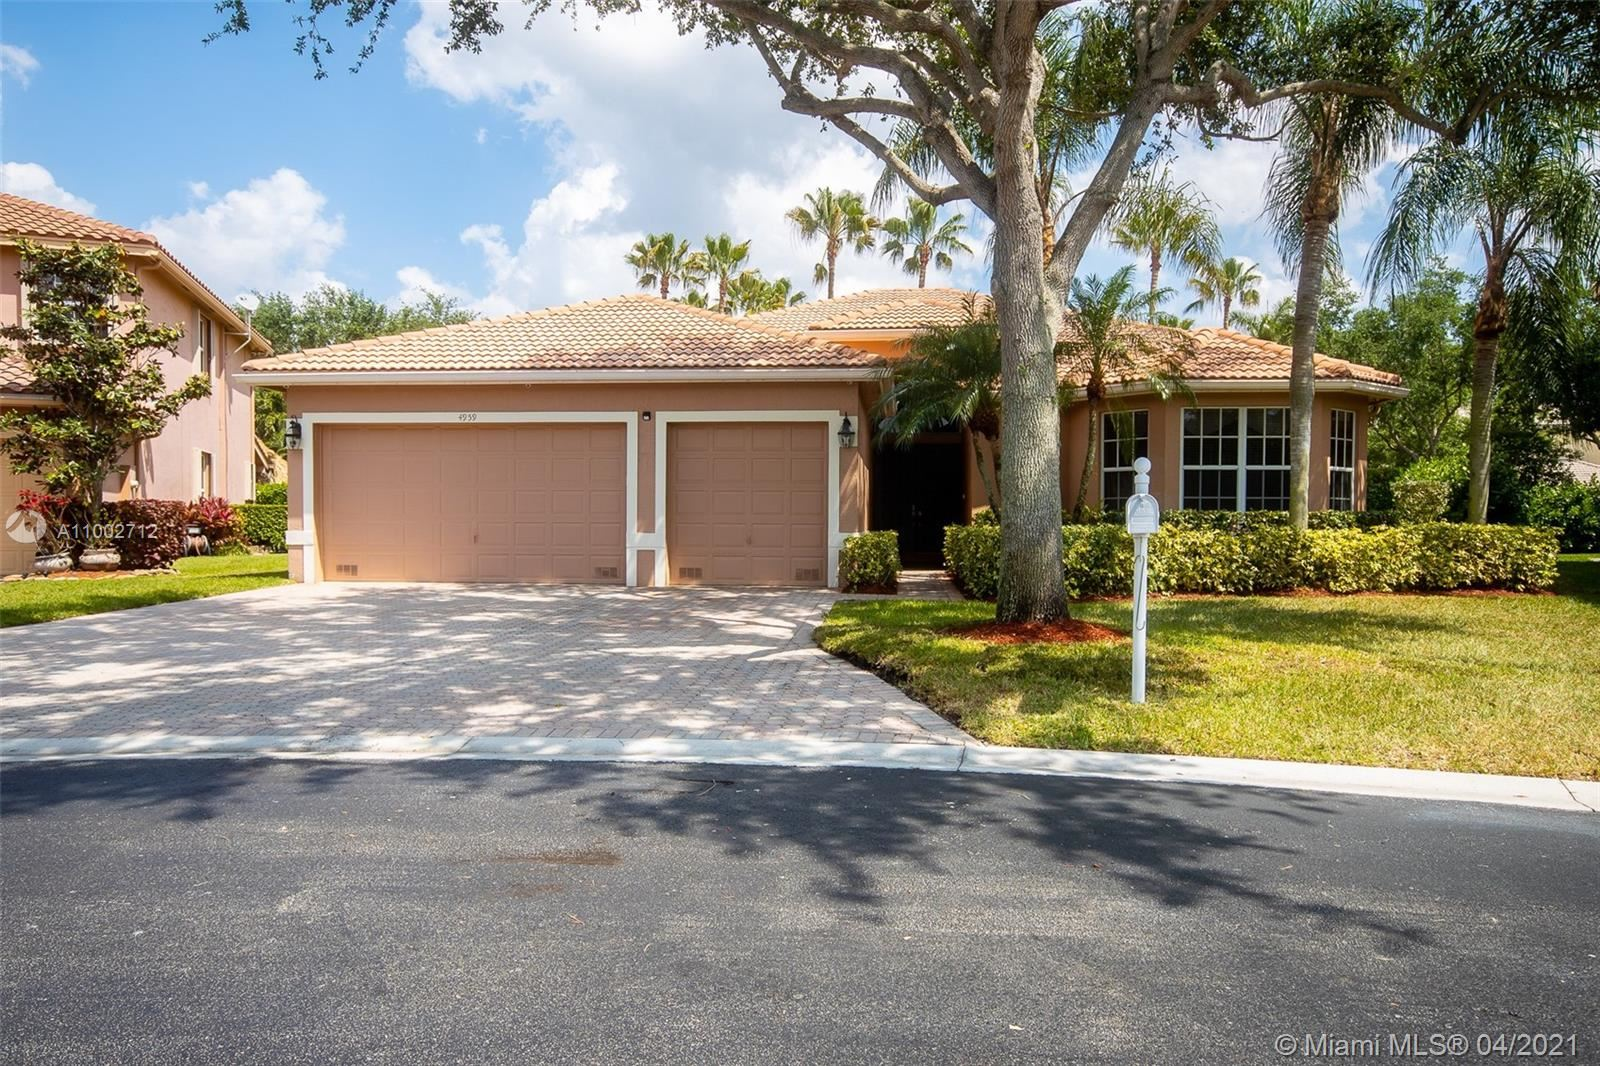 4959 NW 115th Way, Coral Springs, FL 33076 - #: A11002712